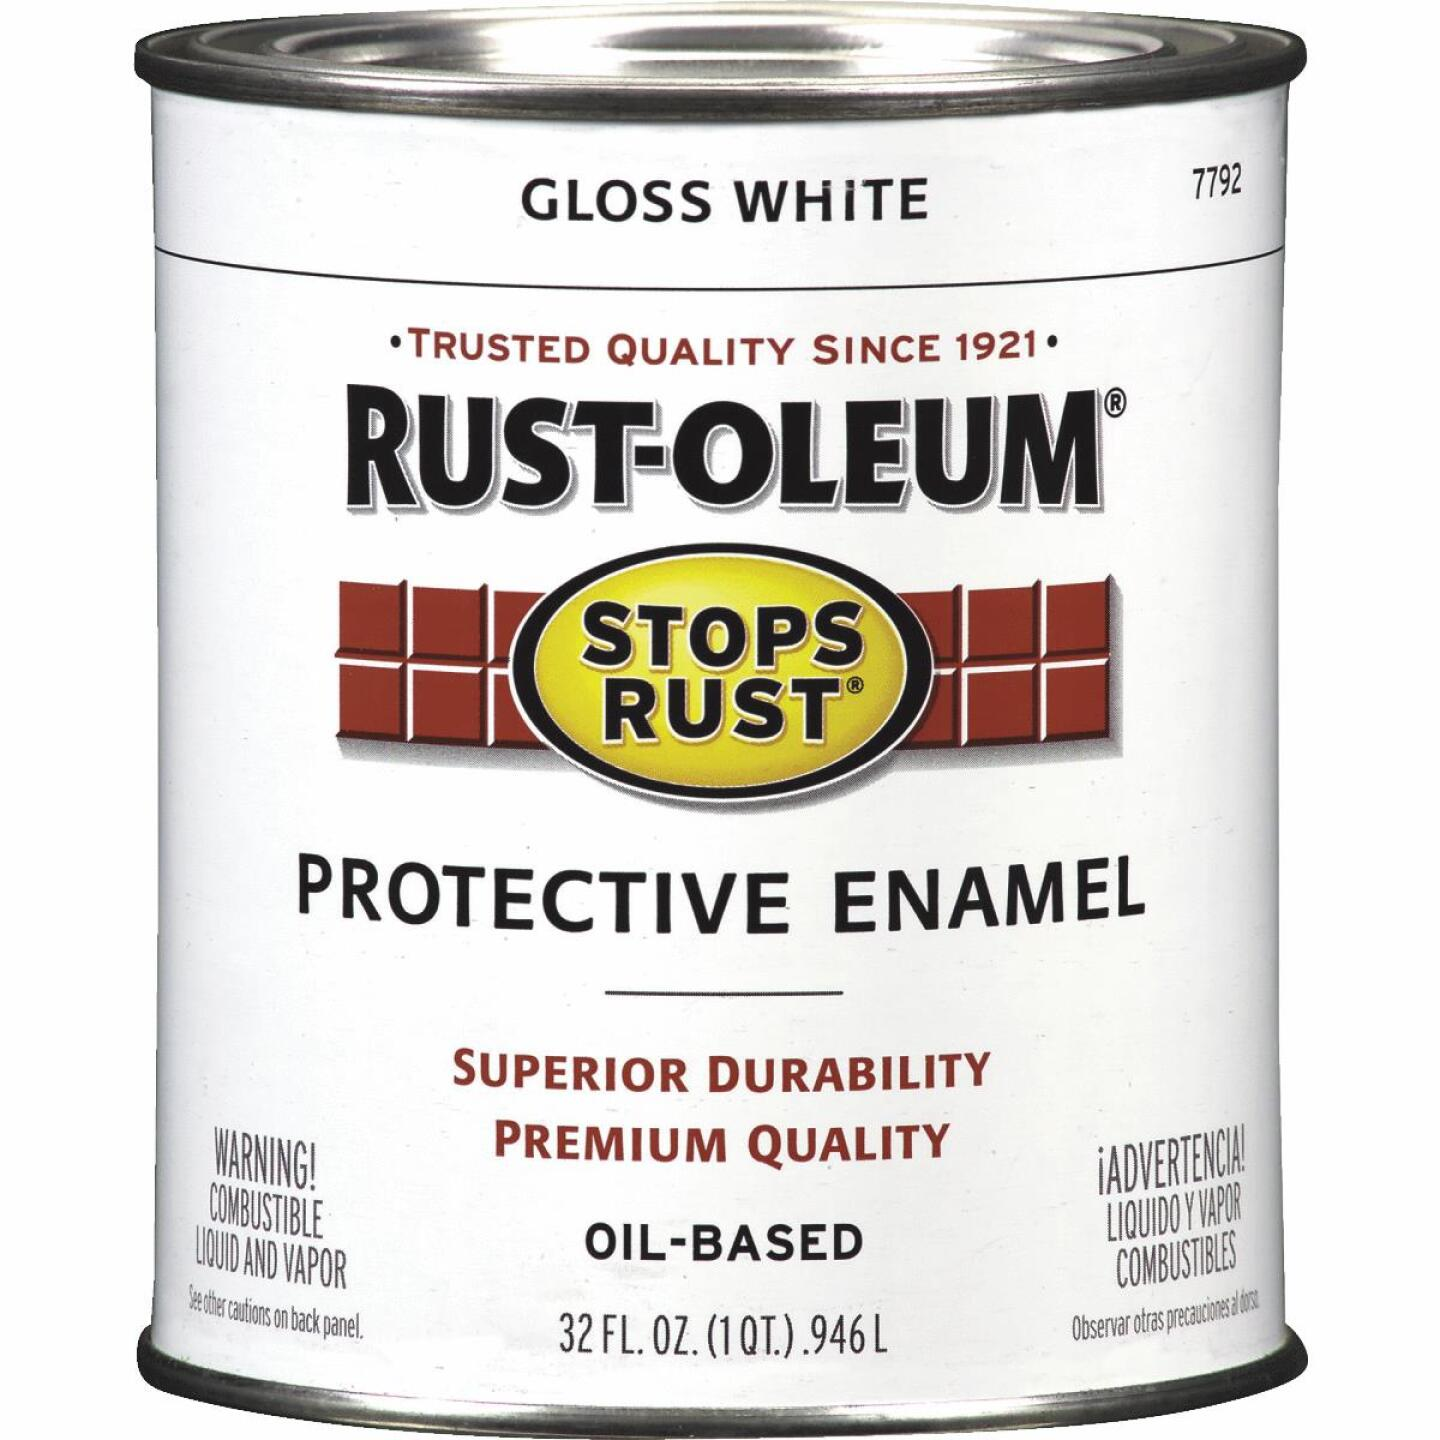 Rust-Oleum Stops Rust Oil Based Gloss Protective Rust Control Enamel, White, 1 Qt. Image 1